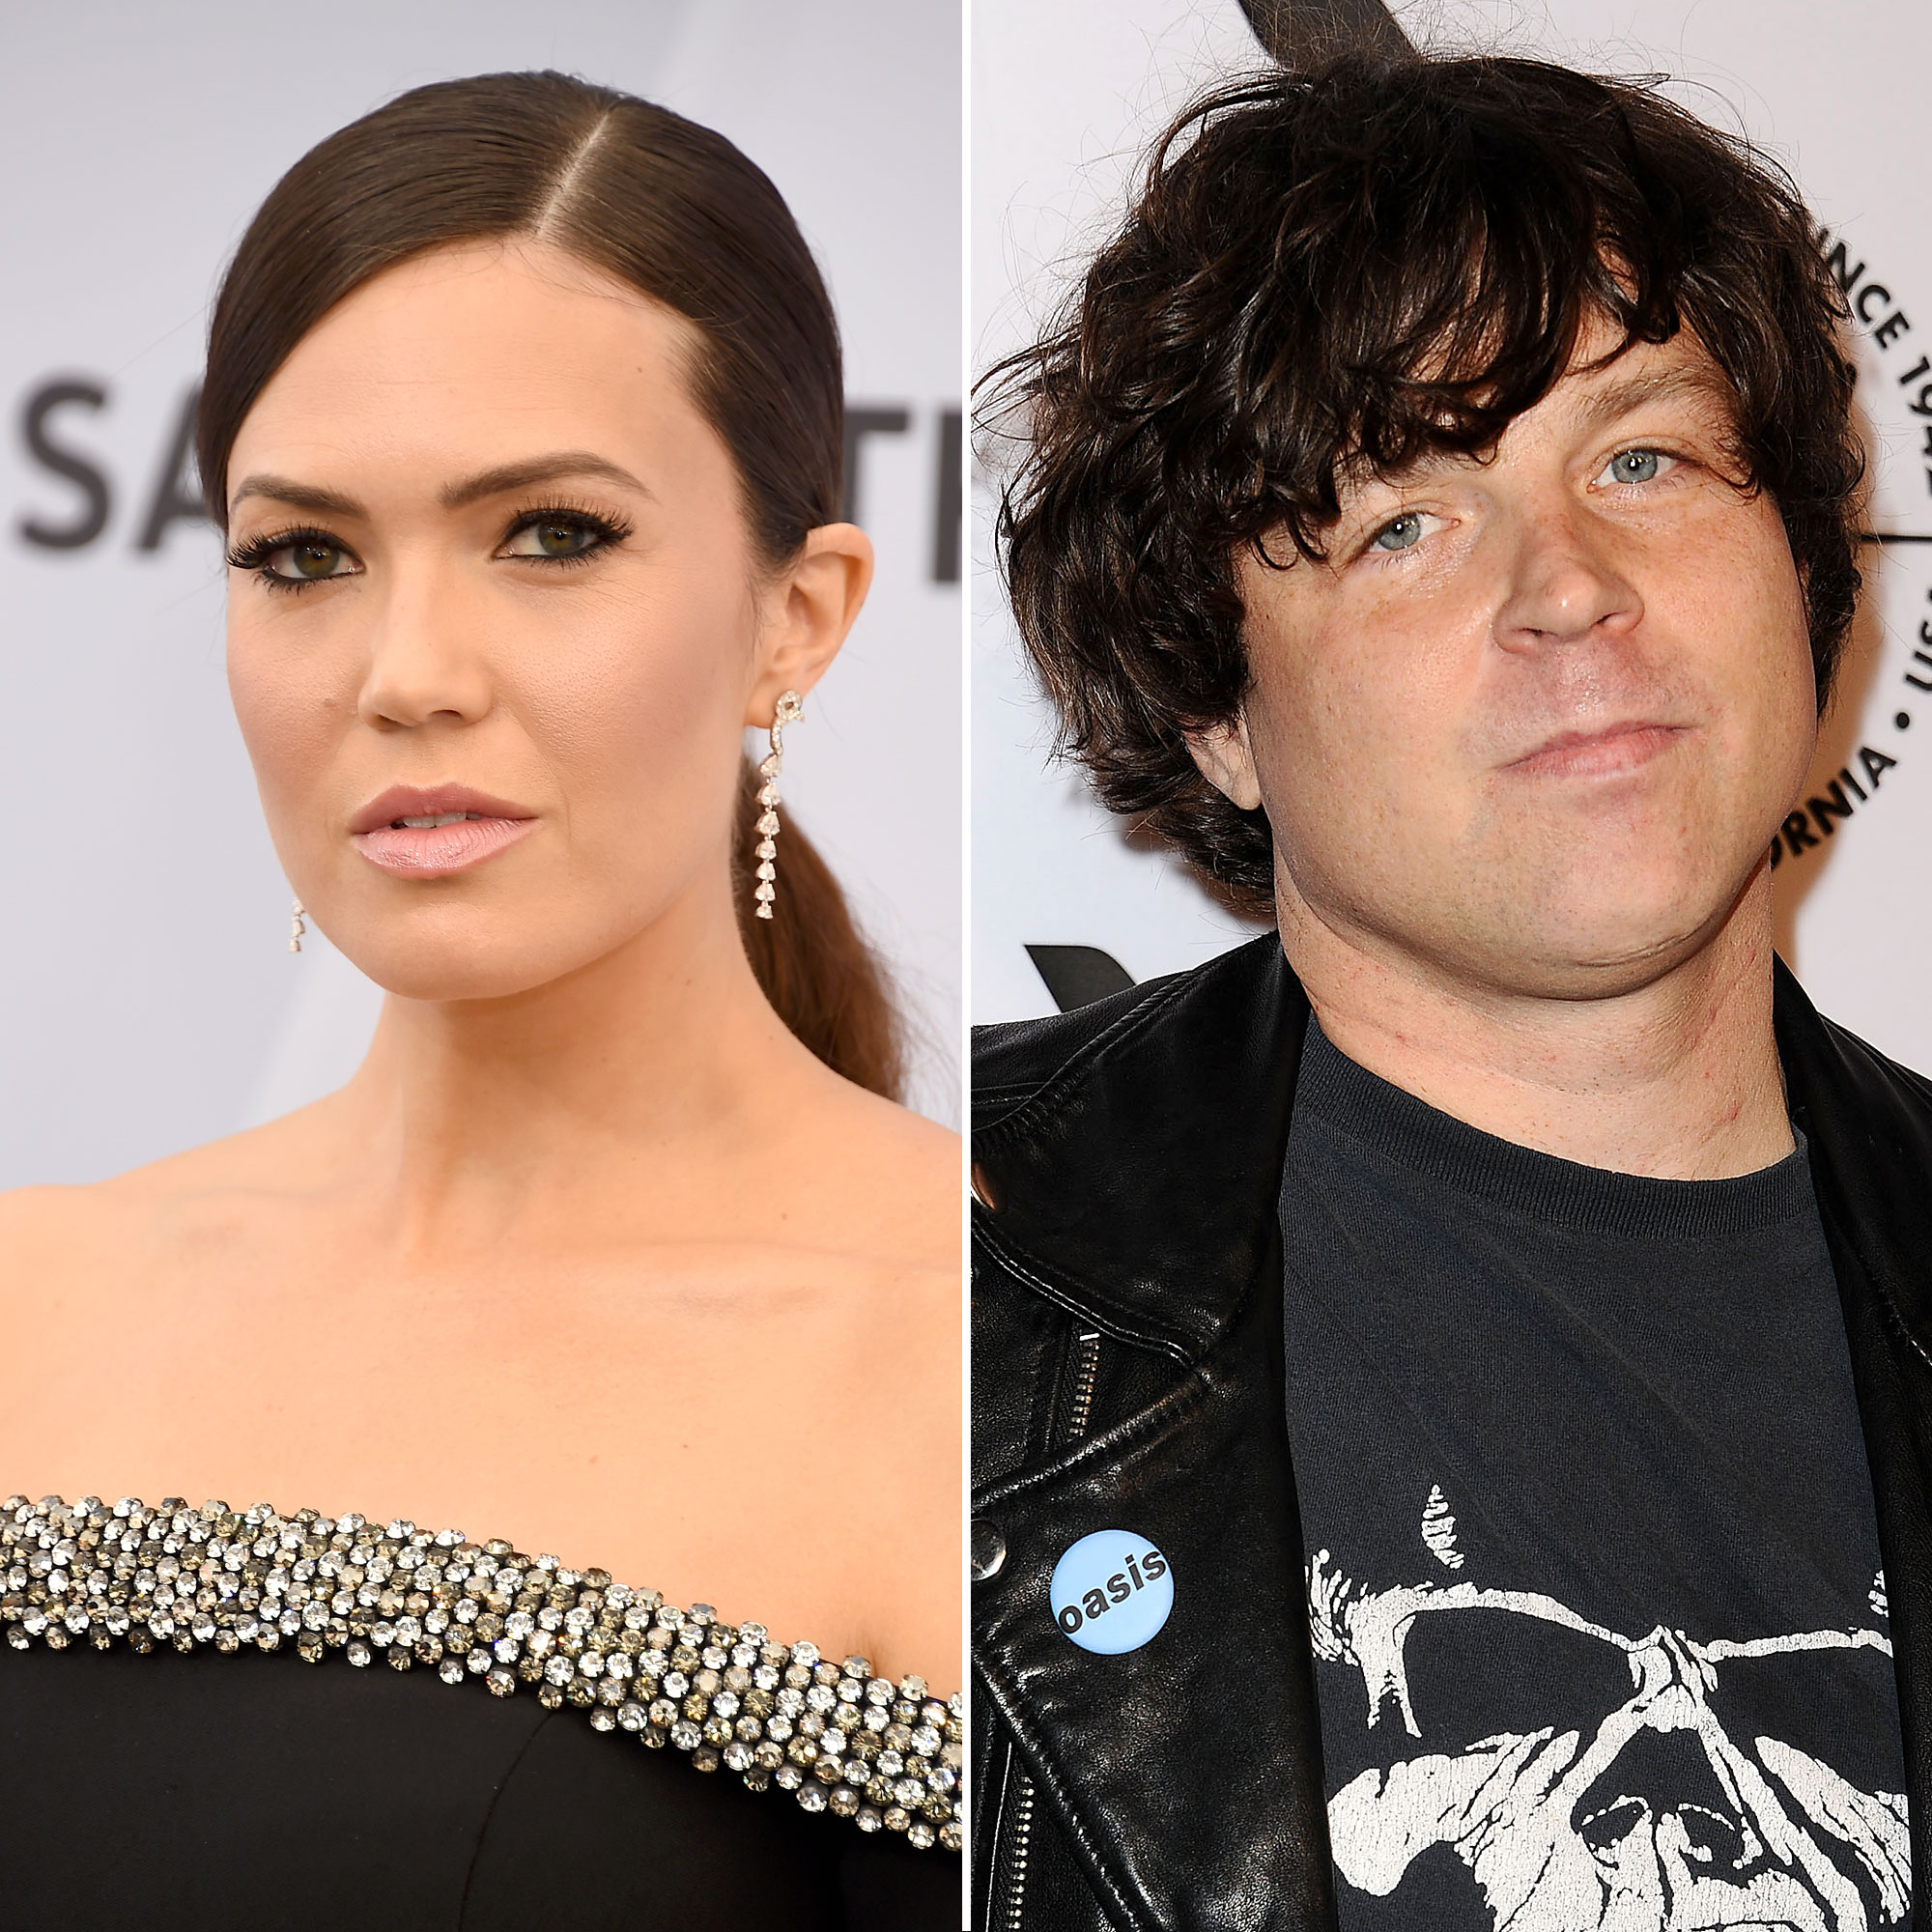 Mandy Moore Reflects on 'Sad' and 'Lonely' Marriage to Ryan Adams: 'I Felt Like I Was Drowning'